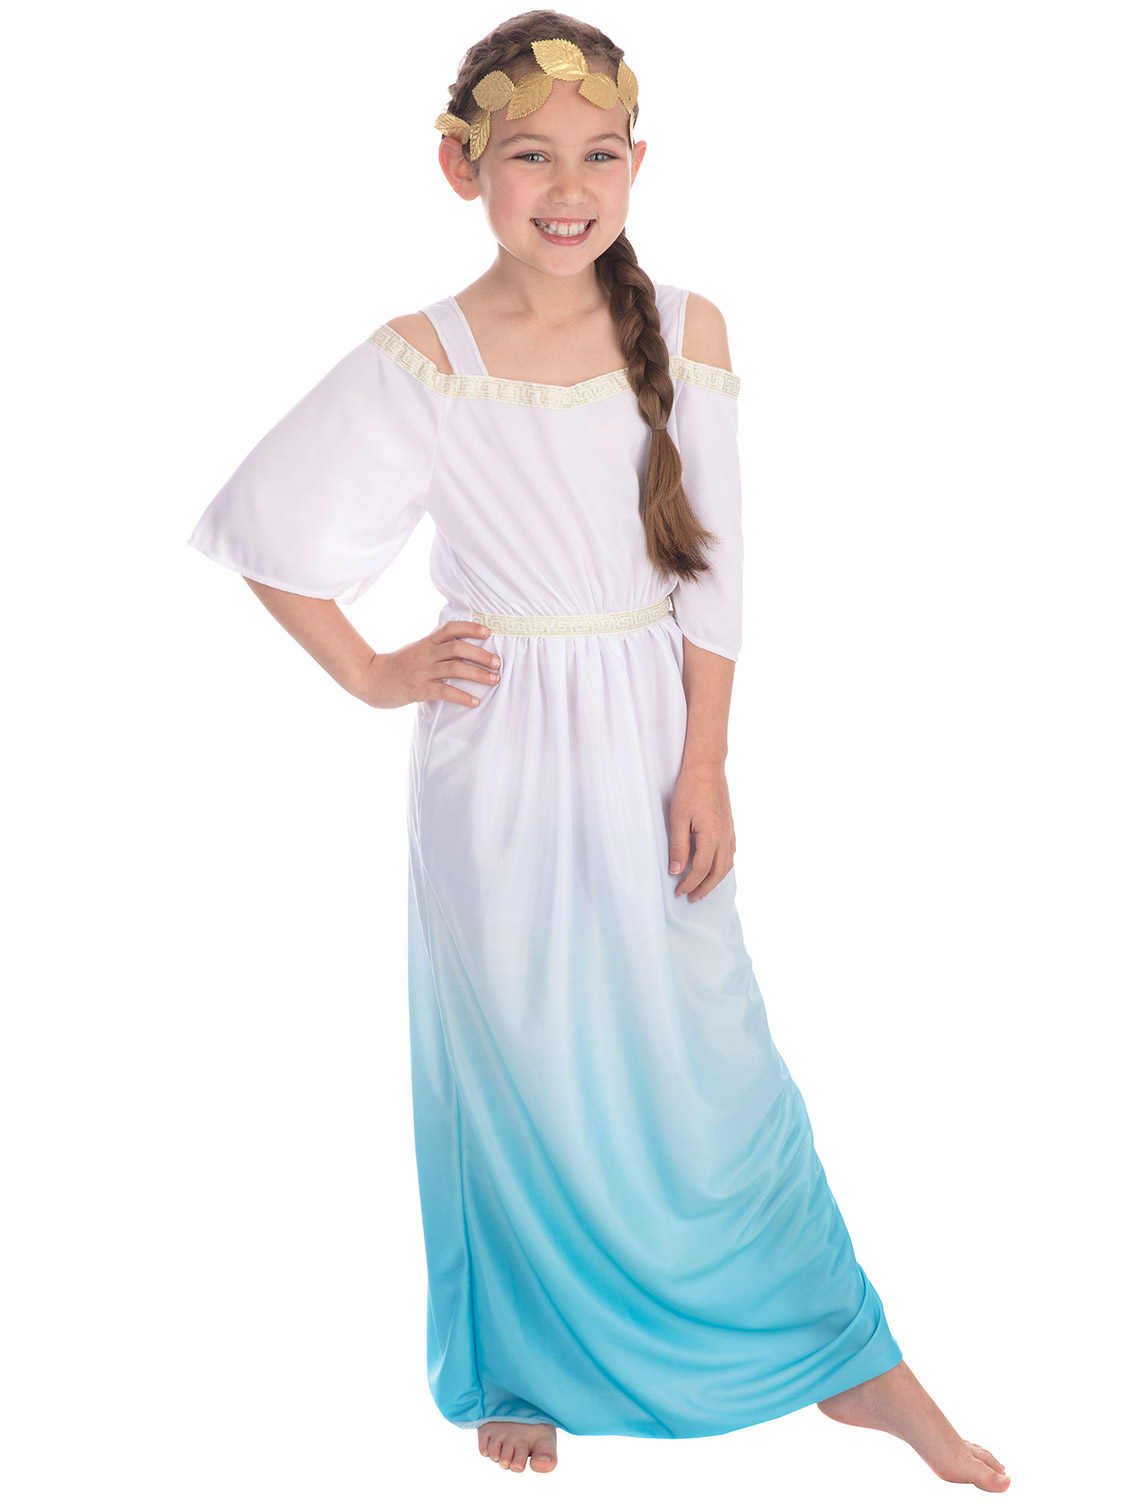 age 4 11 girls greek goddess costume roman toga outfit child kids fancy dress ebay. Black Bedroom Furniture Sets. Home Design Ideas